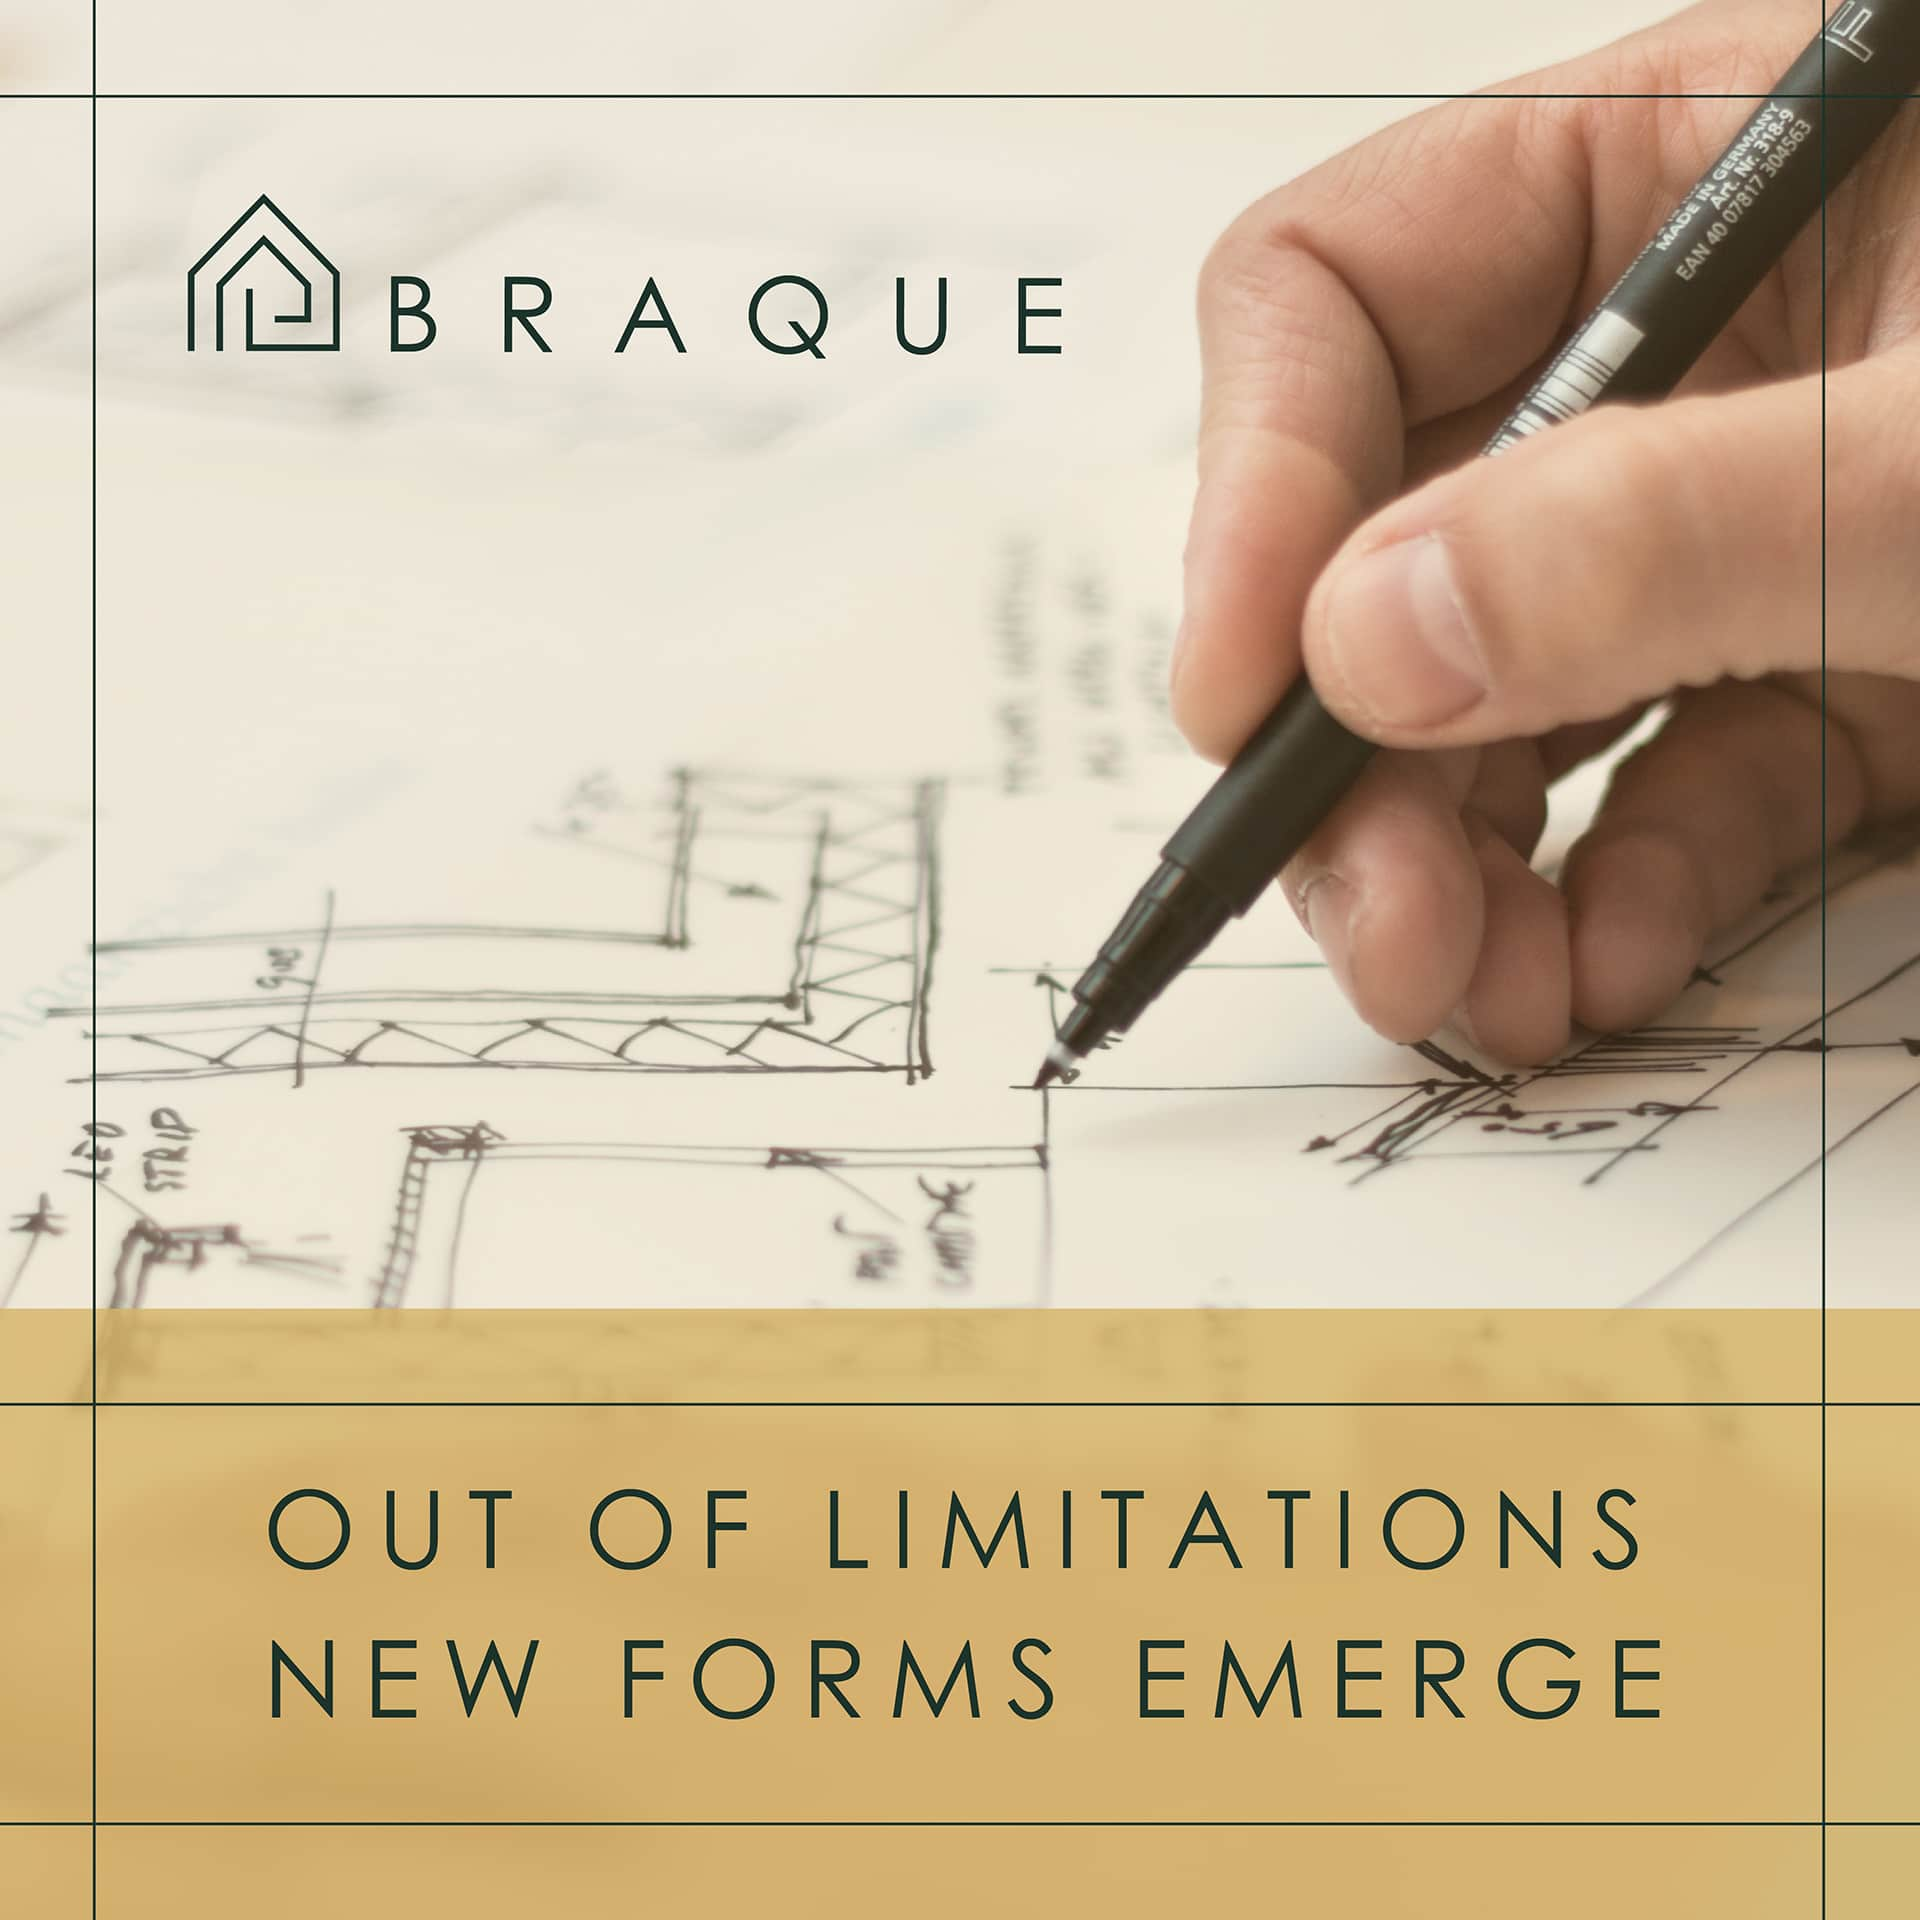 Out of limitations new forms emerge